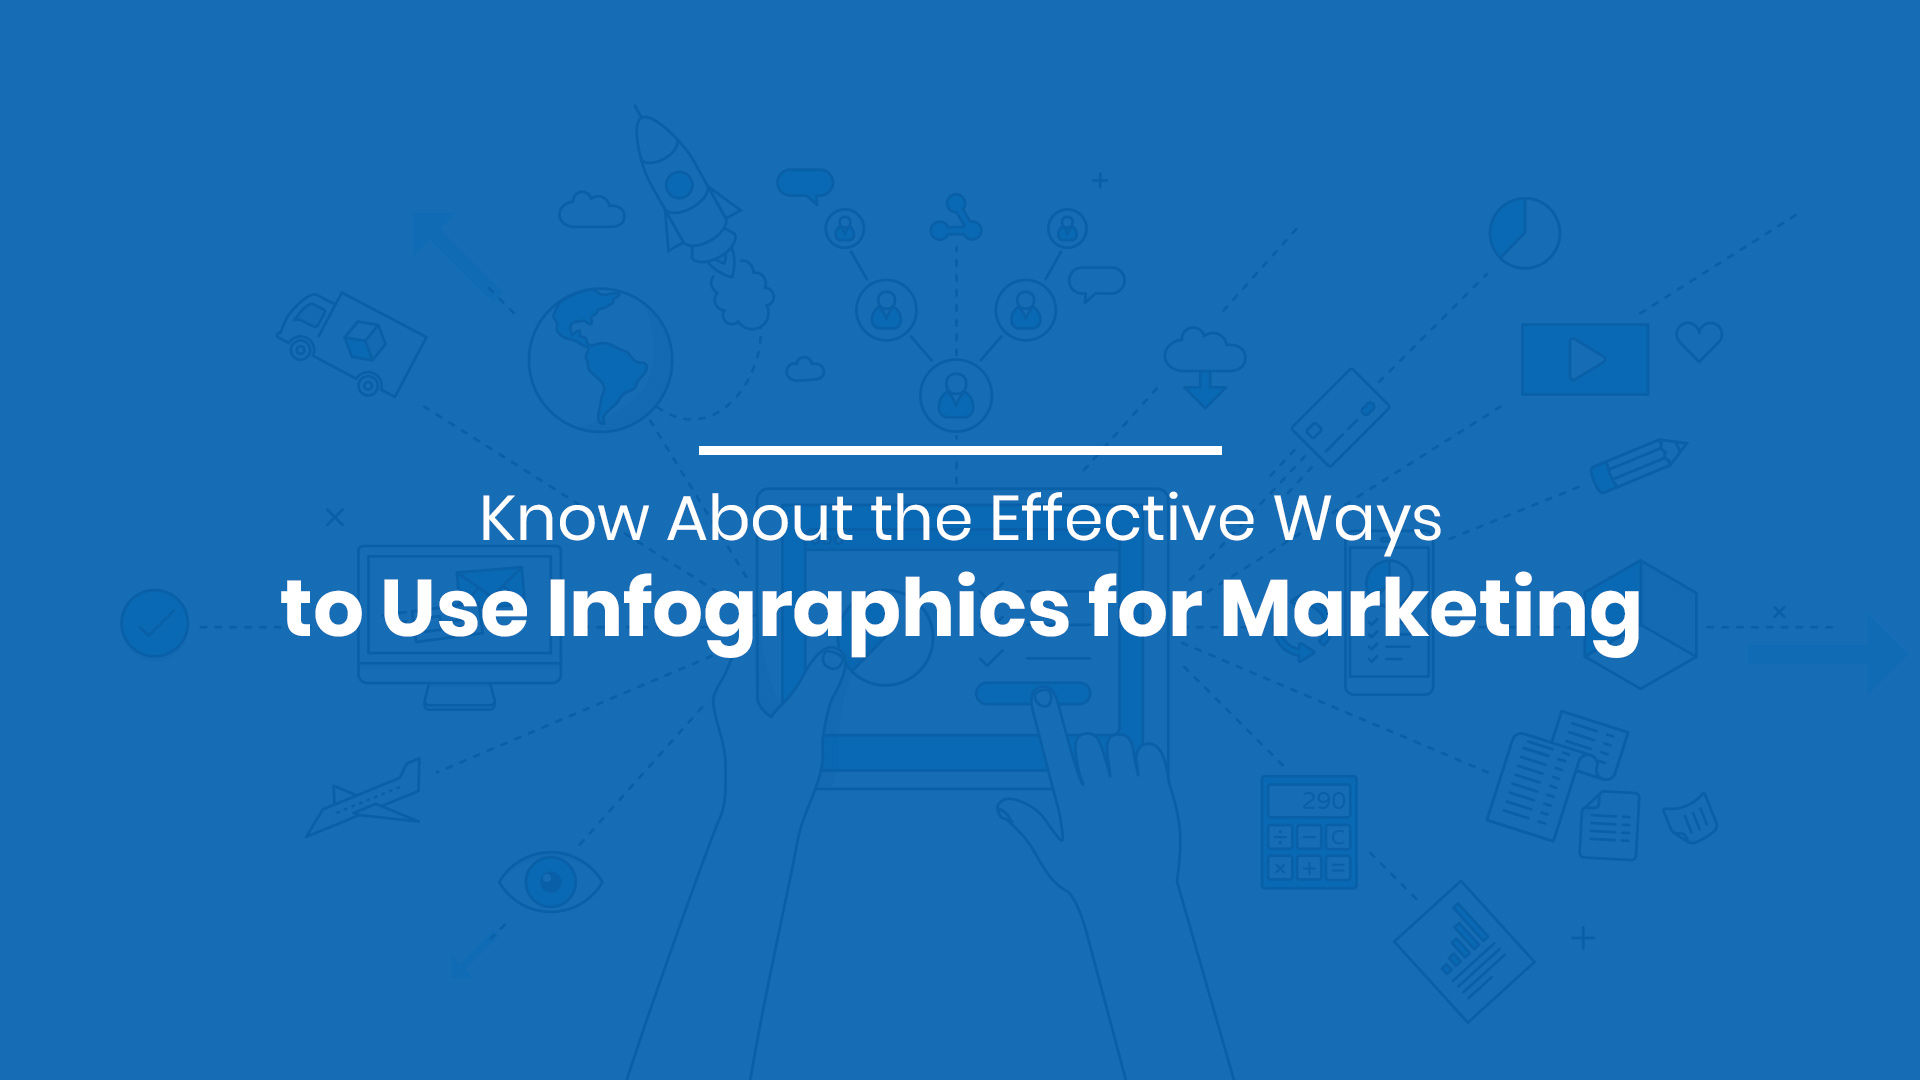 Know About the Effective Ways to Use Infographics for Marketing